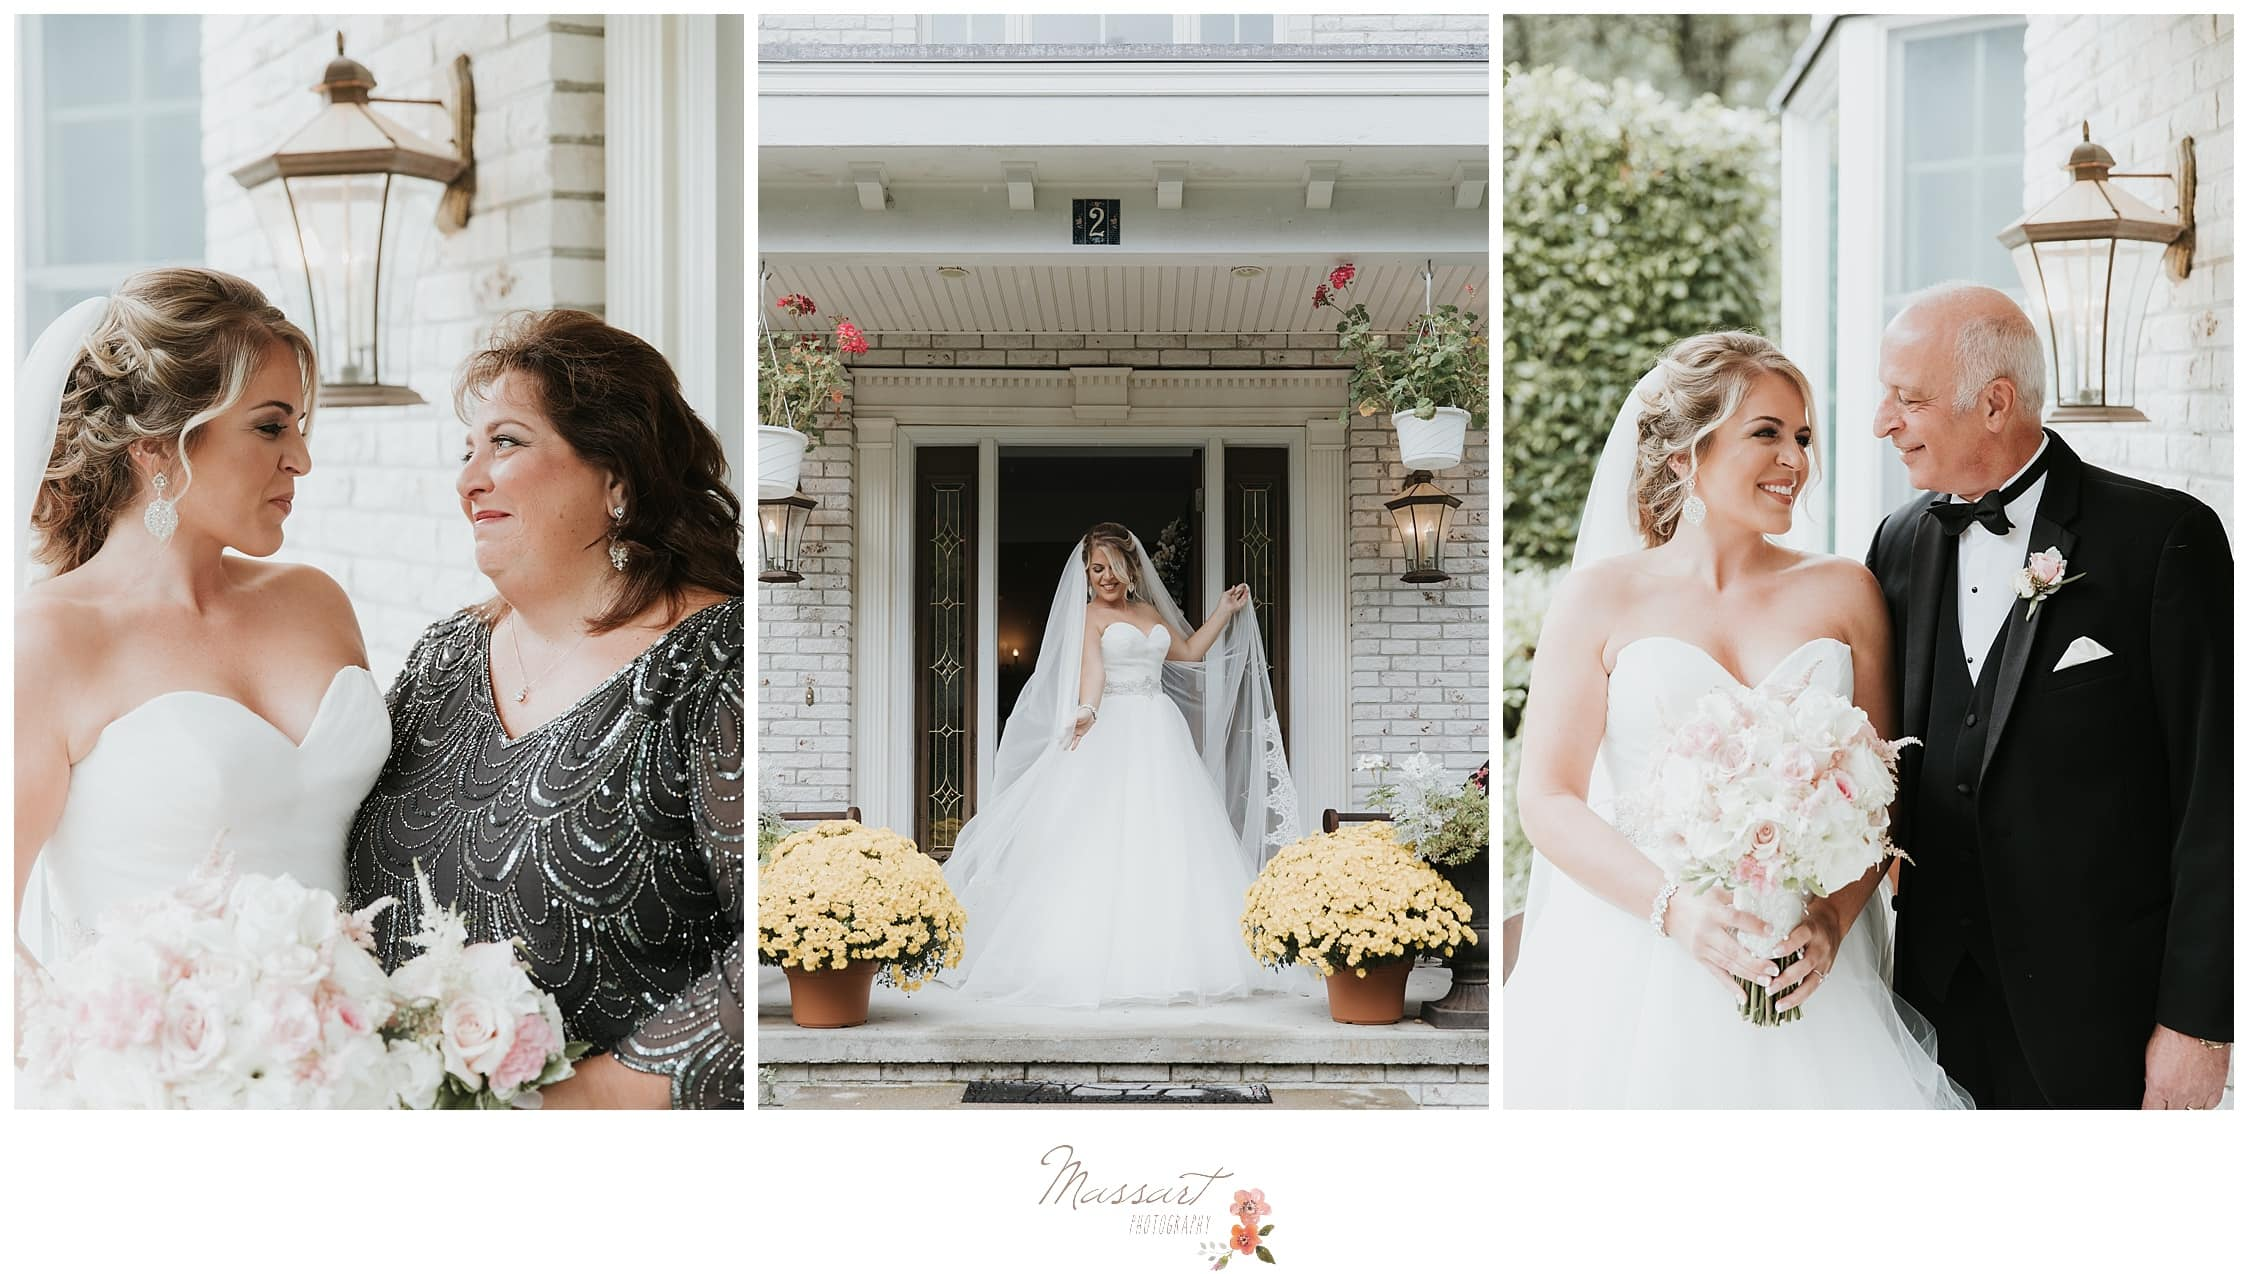 Bride stands with her parents after getting ready for the wedding ceremony photographed by Massart Photography RI